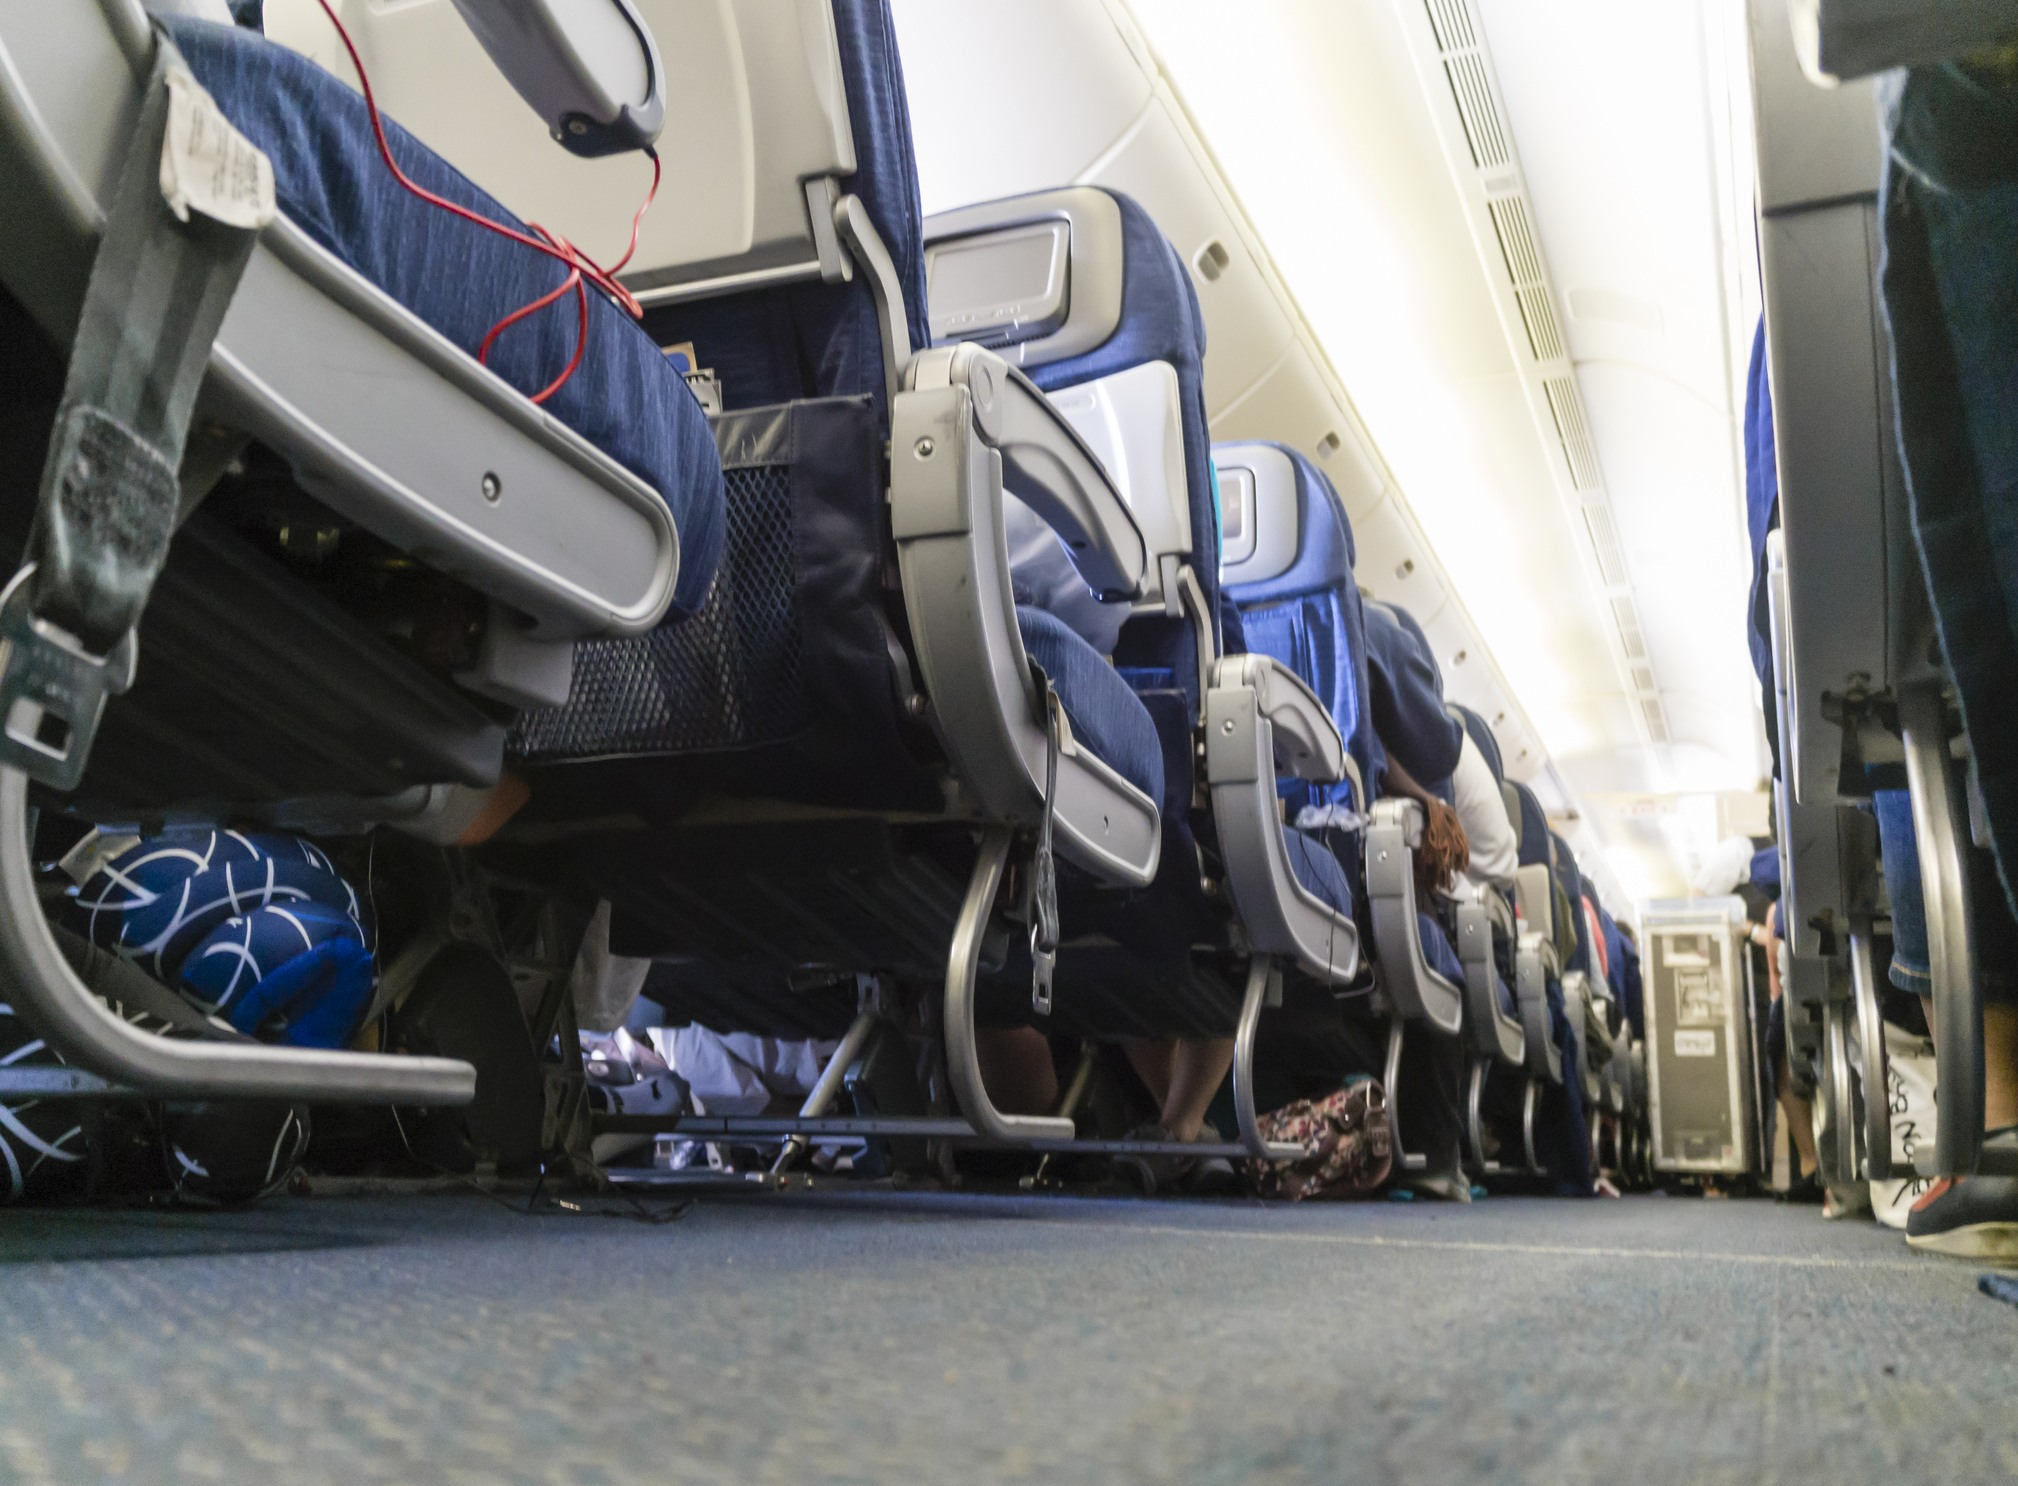 aisle of passenger airplane